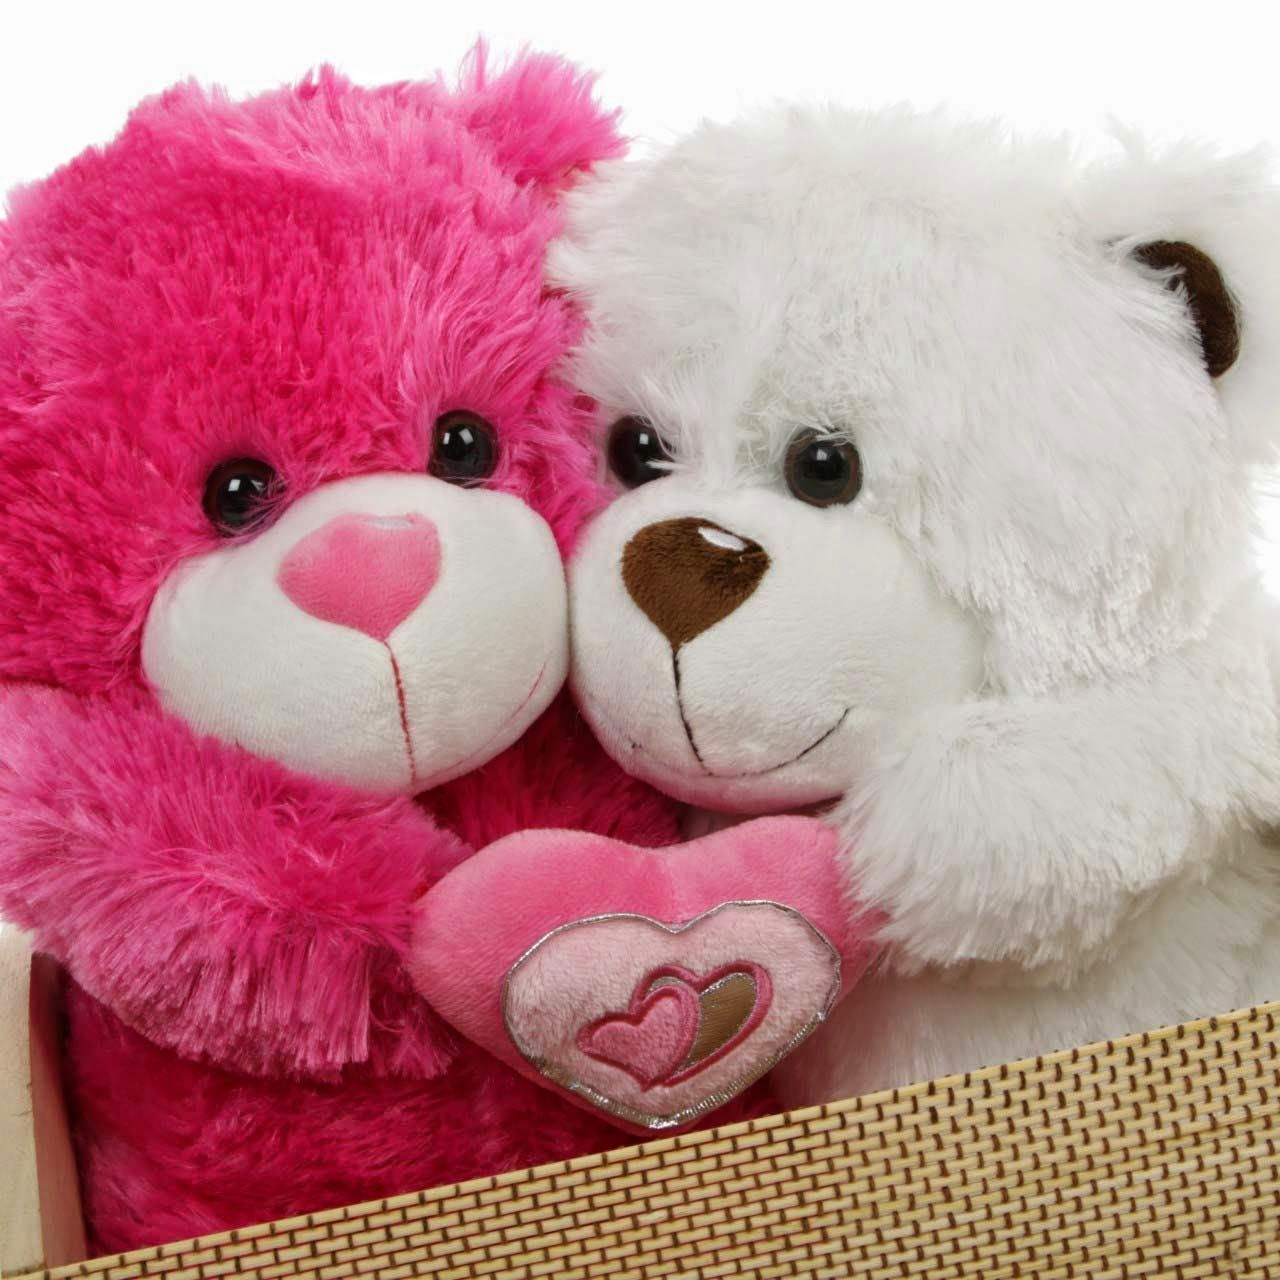 Love Teddy Bear Hd Wallpaper : cute-teddy-bear-and-love-wallpapers-download-for-mobile_3 Hd Wallpaper Full Pinterest ...